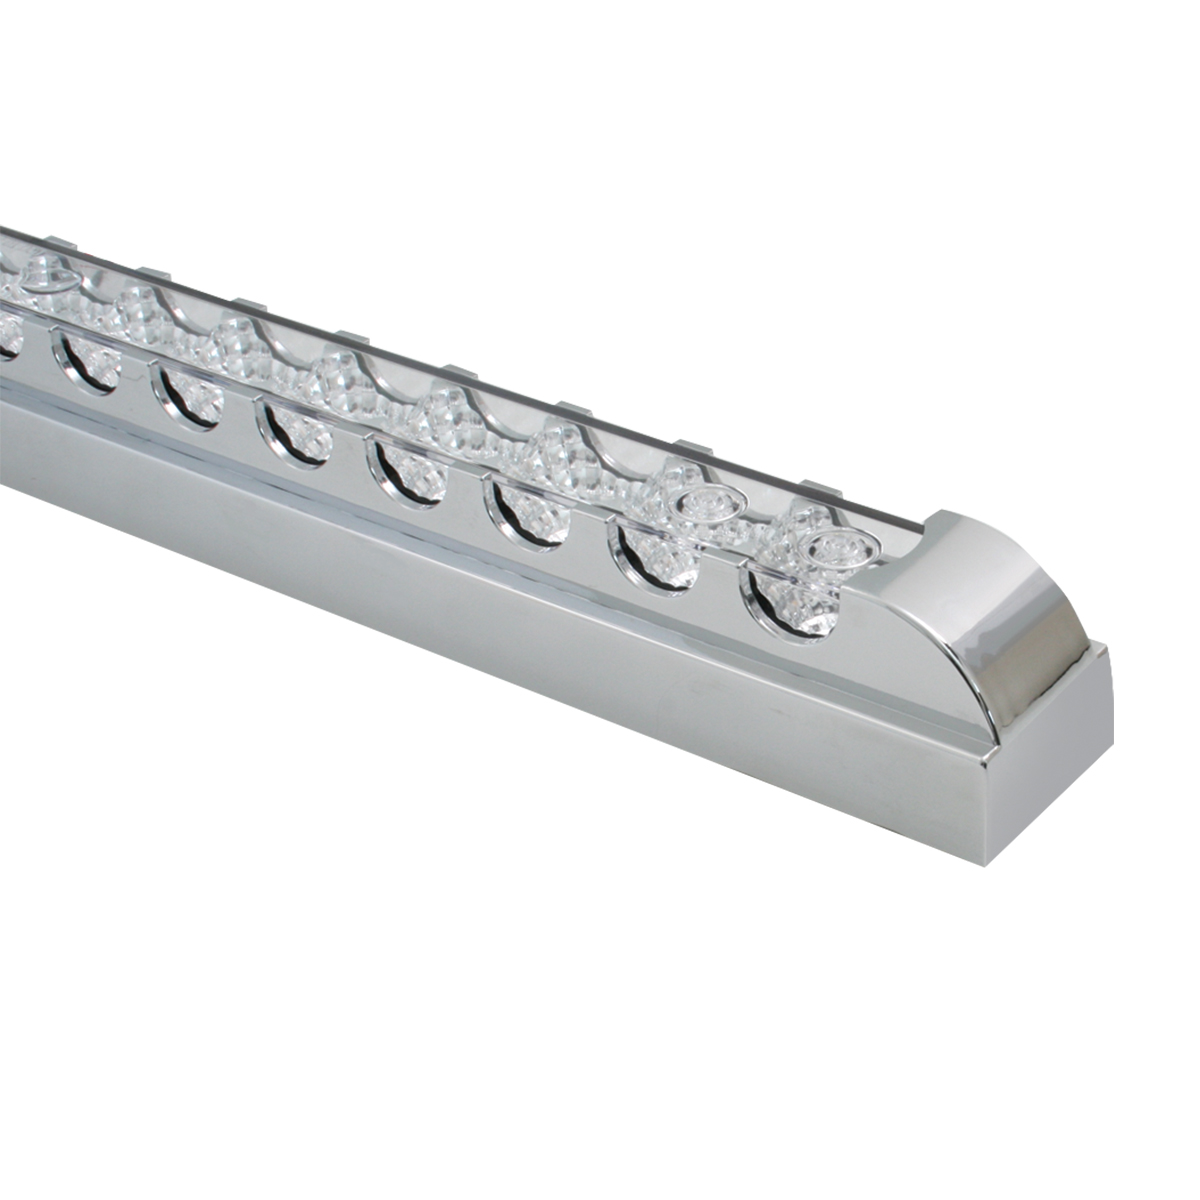 "20"" Spyder LED Light Bar in Clear Lens w/ Chrome Plastic Bezel"